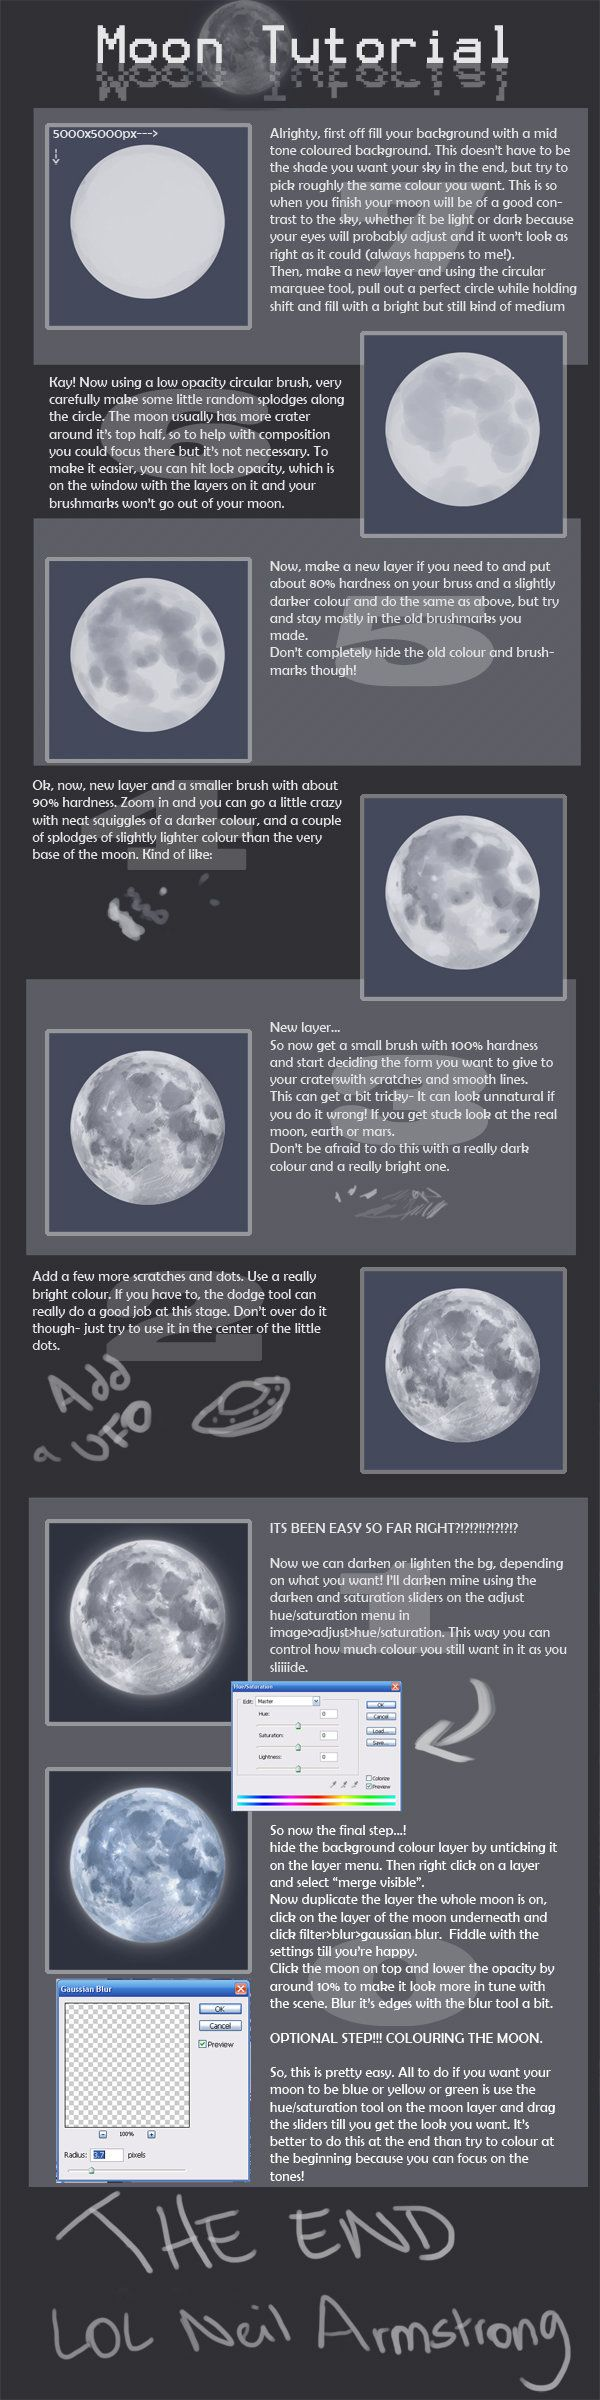 Someone loverly asked me to do a moon tutorial... I'm flattered! Blah blah blah the old this isnt the right way this is my way disclaimer by the way. There are probably better ways to do this....